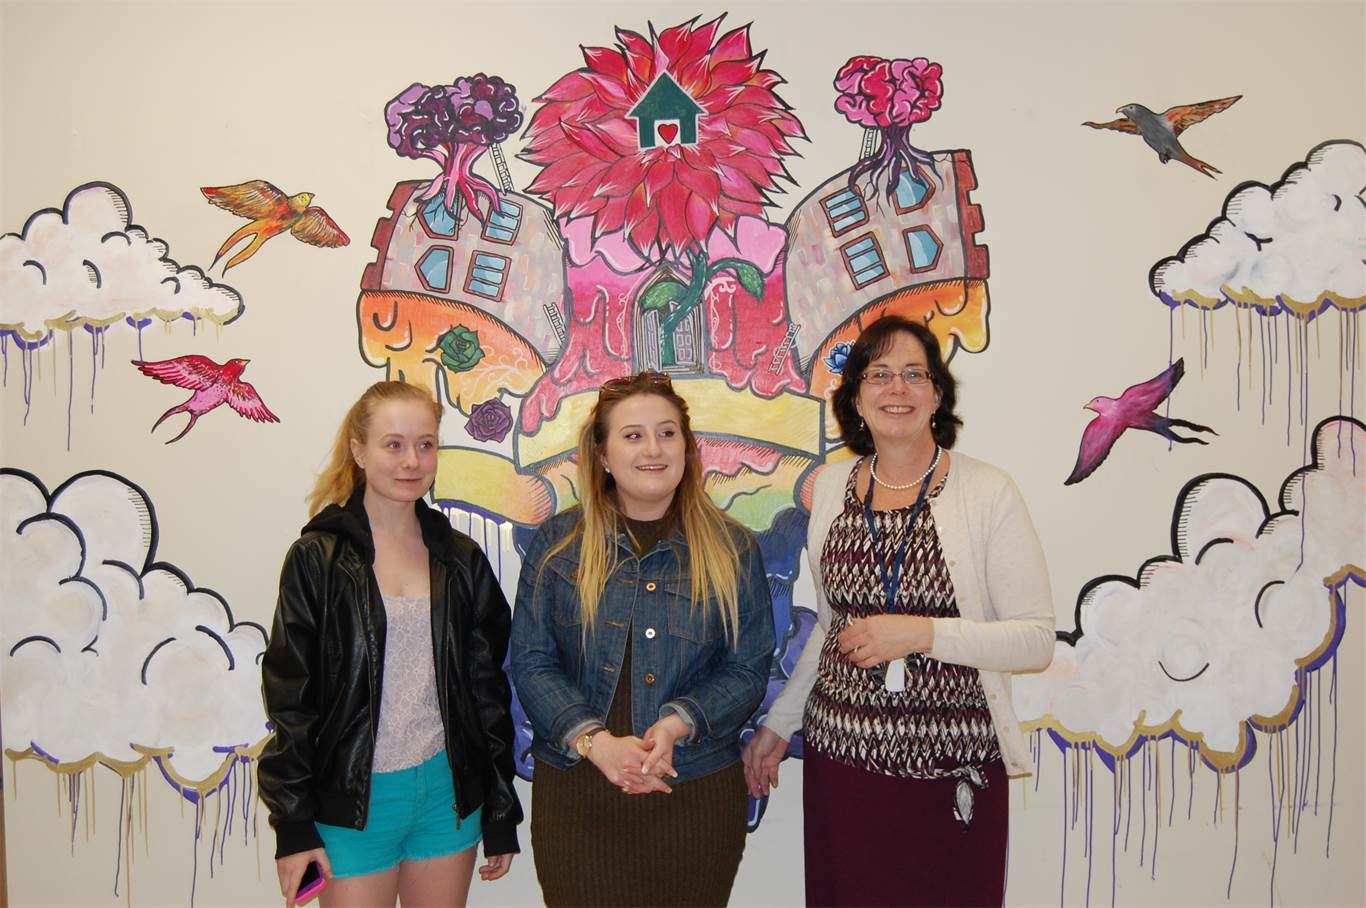 Wilma's Place mural project promotes mental health